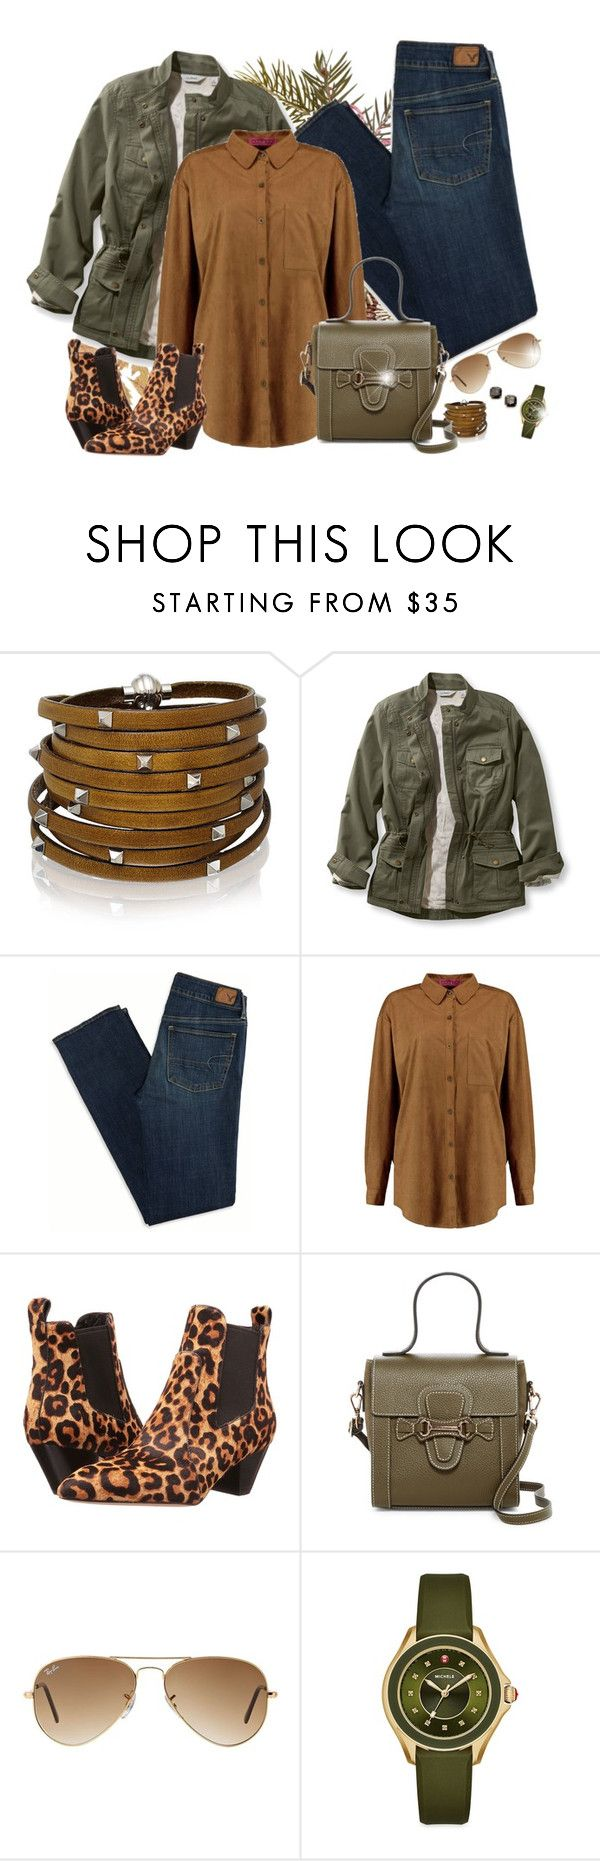 """""""Casual outfit"""" by asia-12 ❤ liked on Polyvore featuring Sif Jakobs Jewellery, L.L.Bean, American Eagle Outfitters, Boohoo, Marc Jacobs, Mario Valentino, Ray-Ban, Michele, Kate Spade and plus size clothing"""